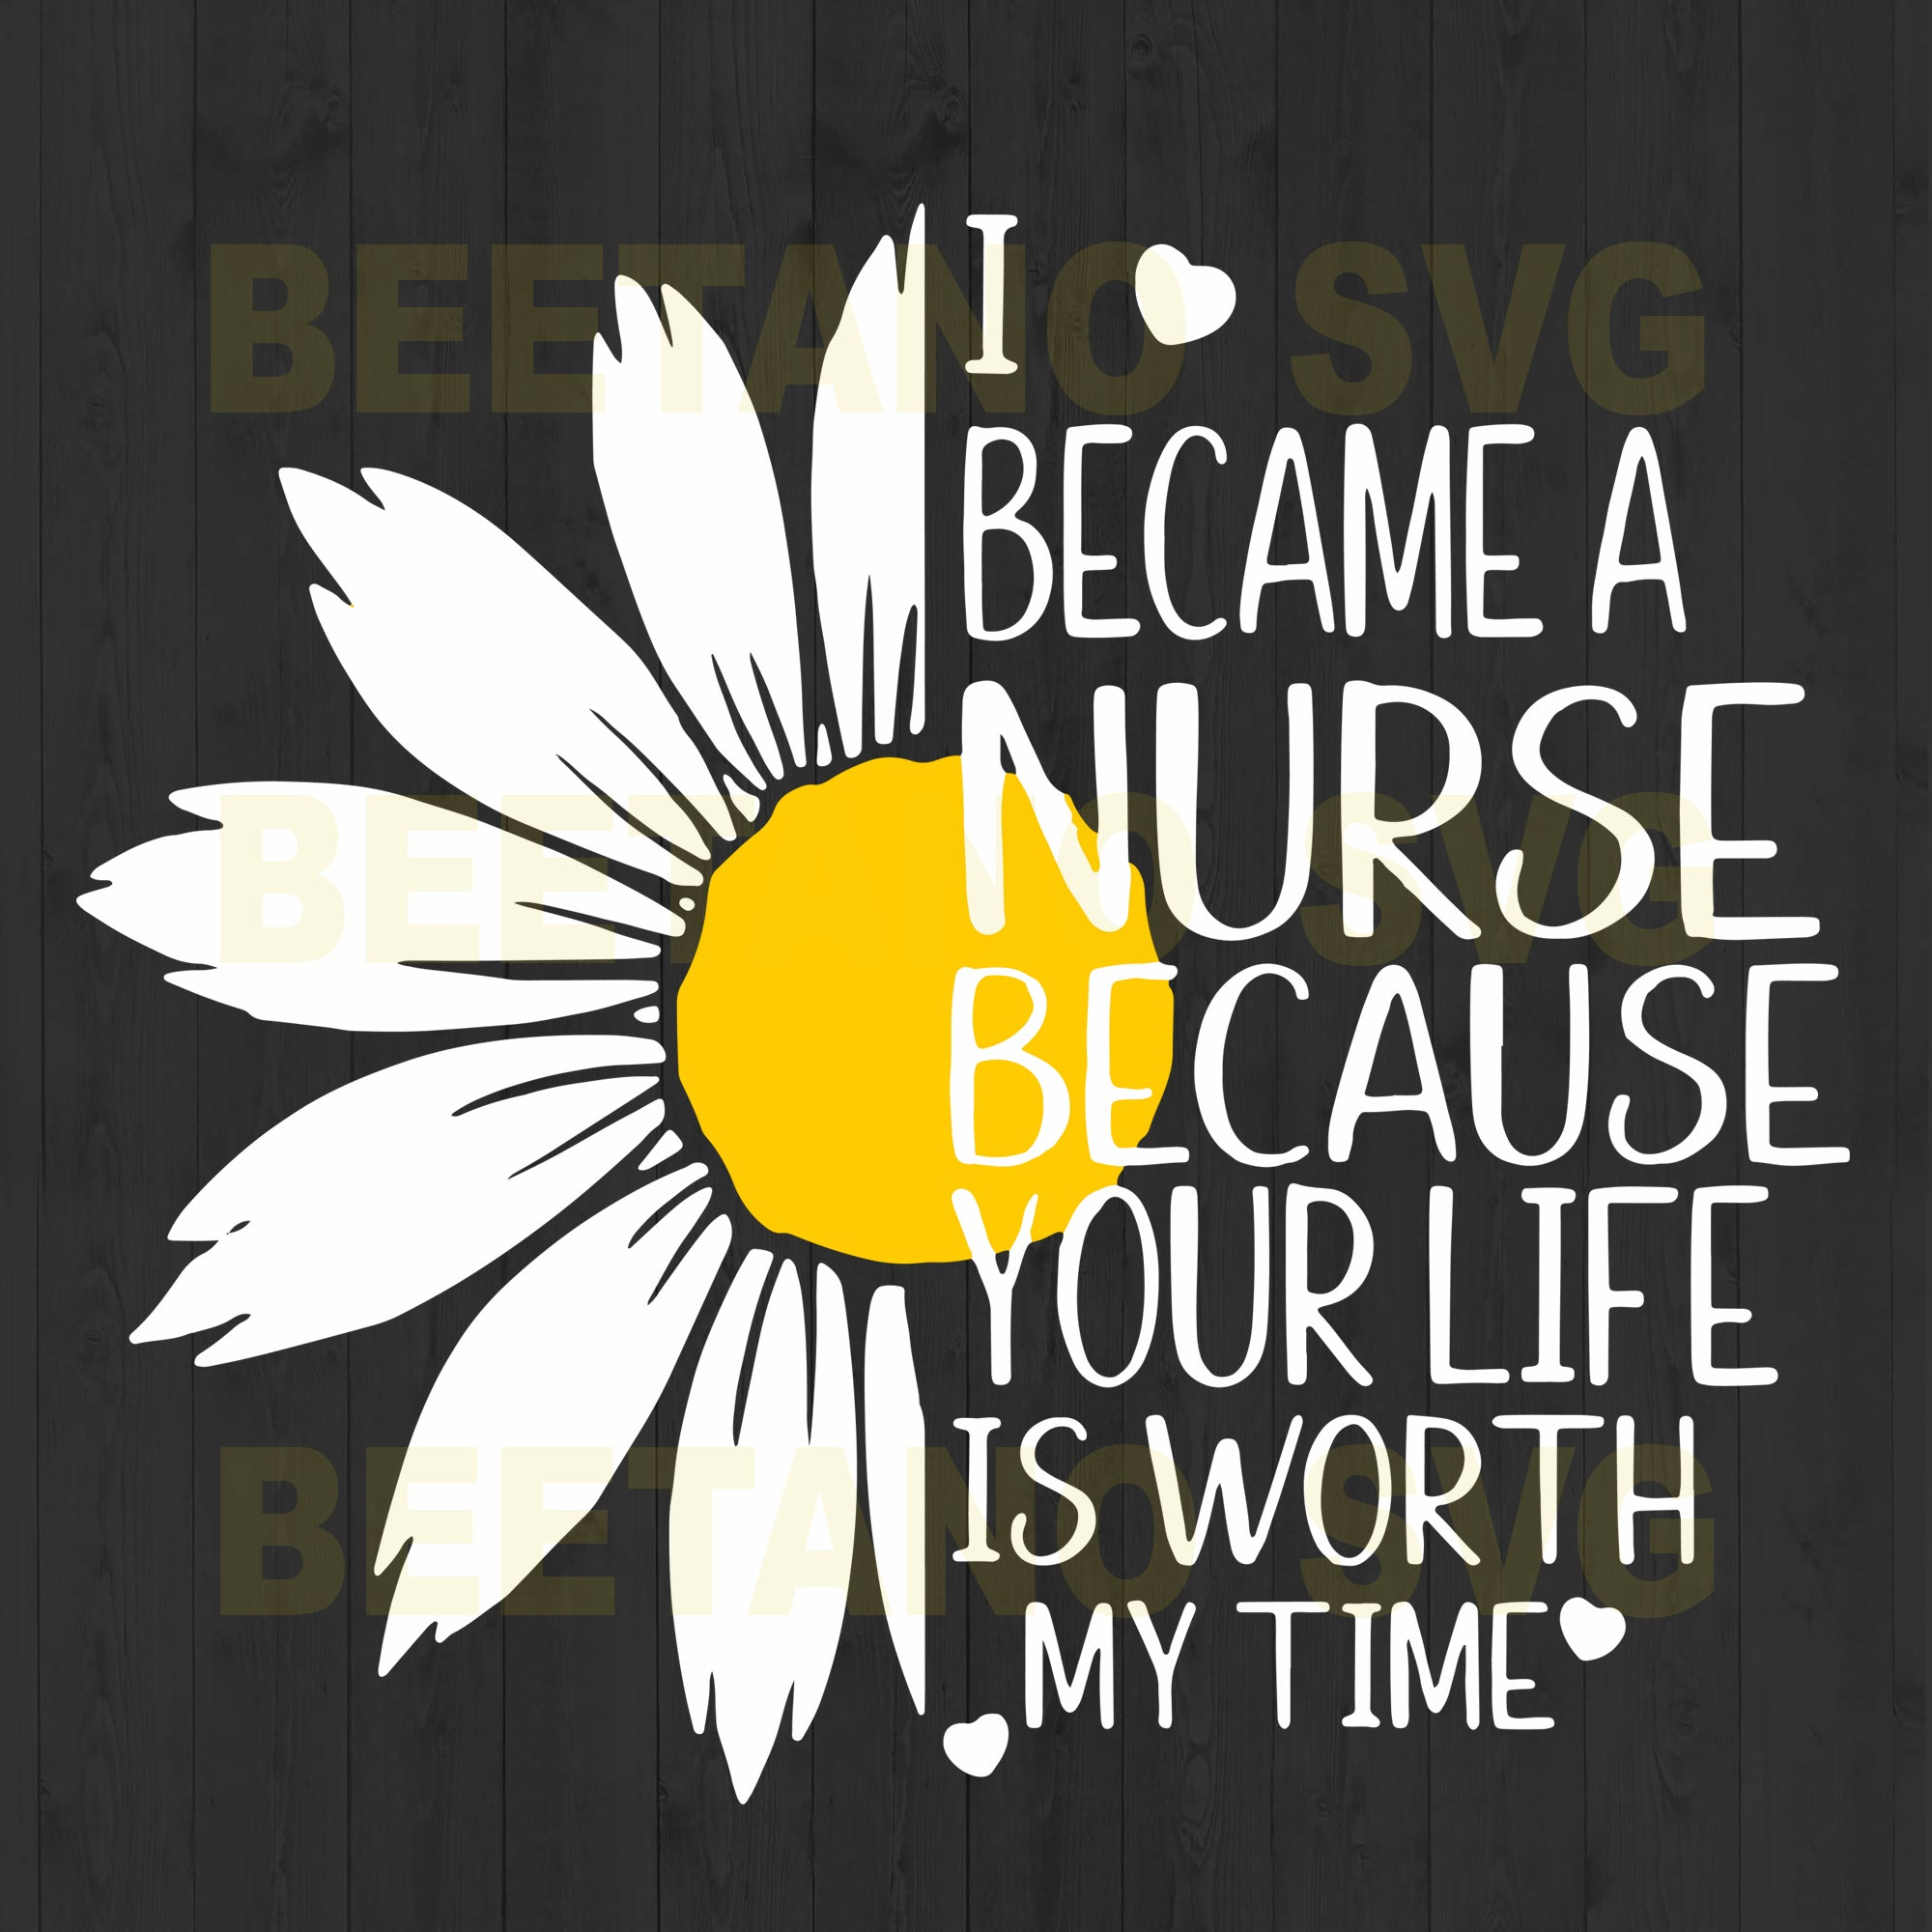 I Became A Nurse Because Your Life Is Worth My Time